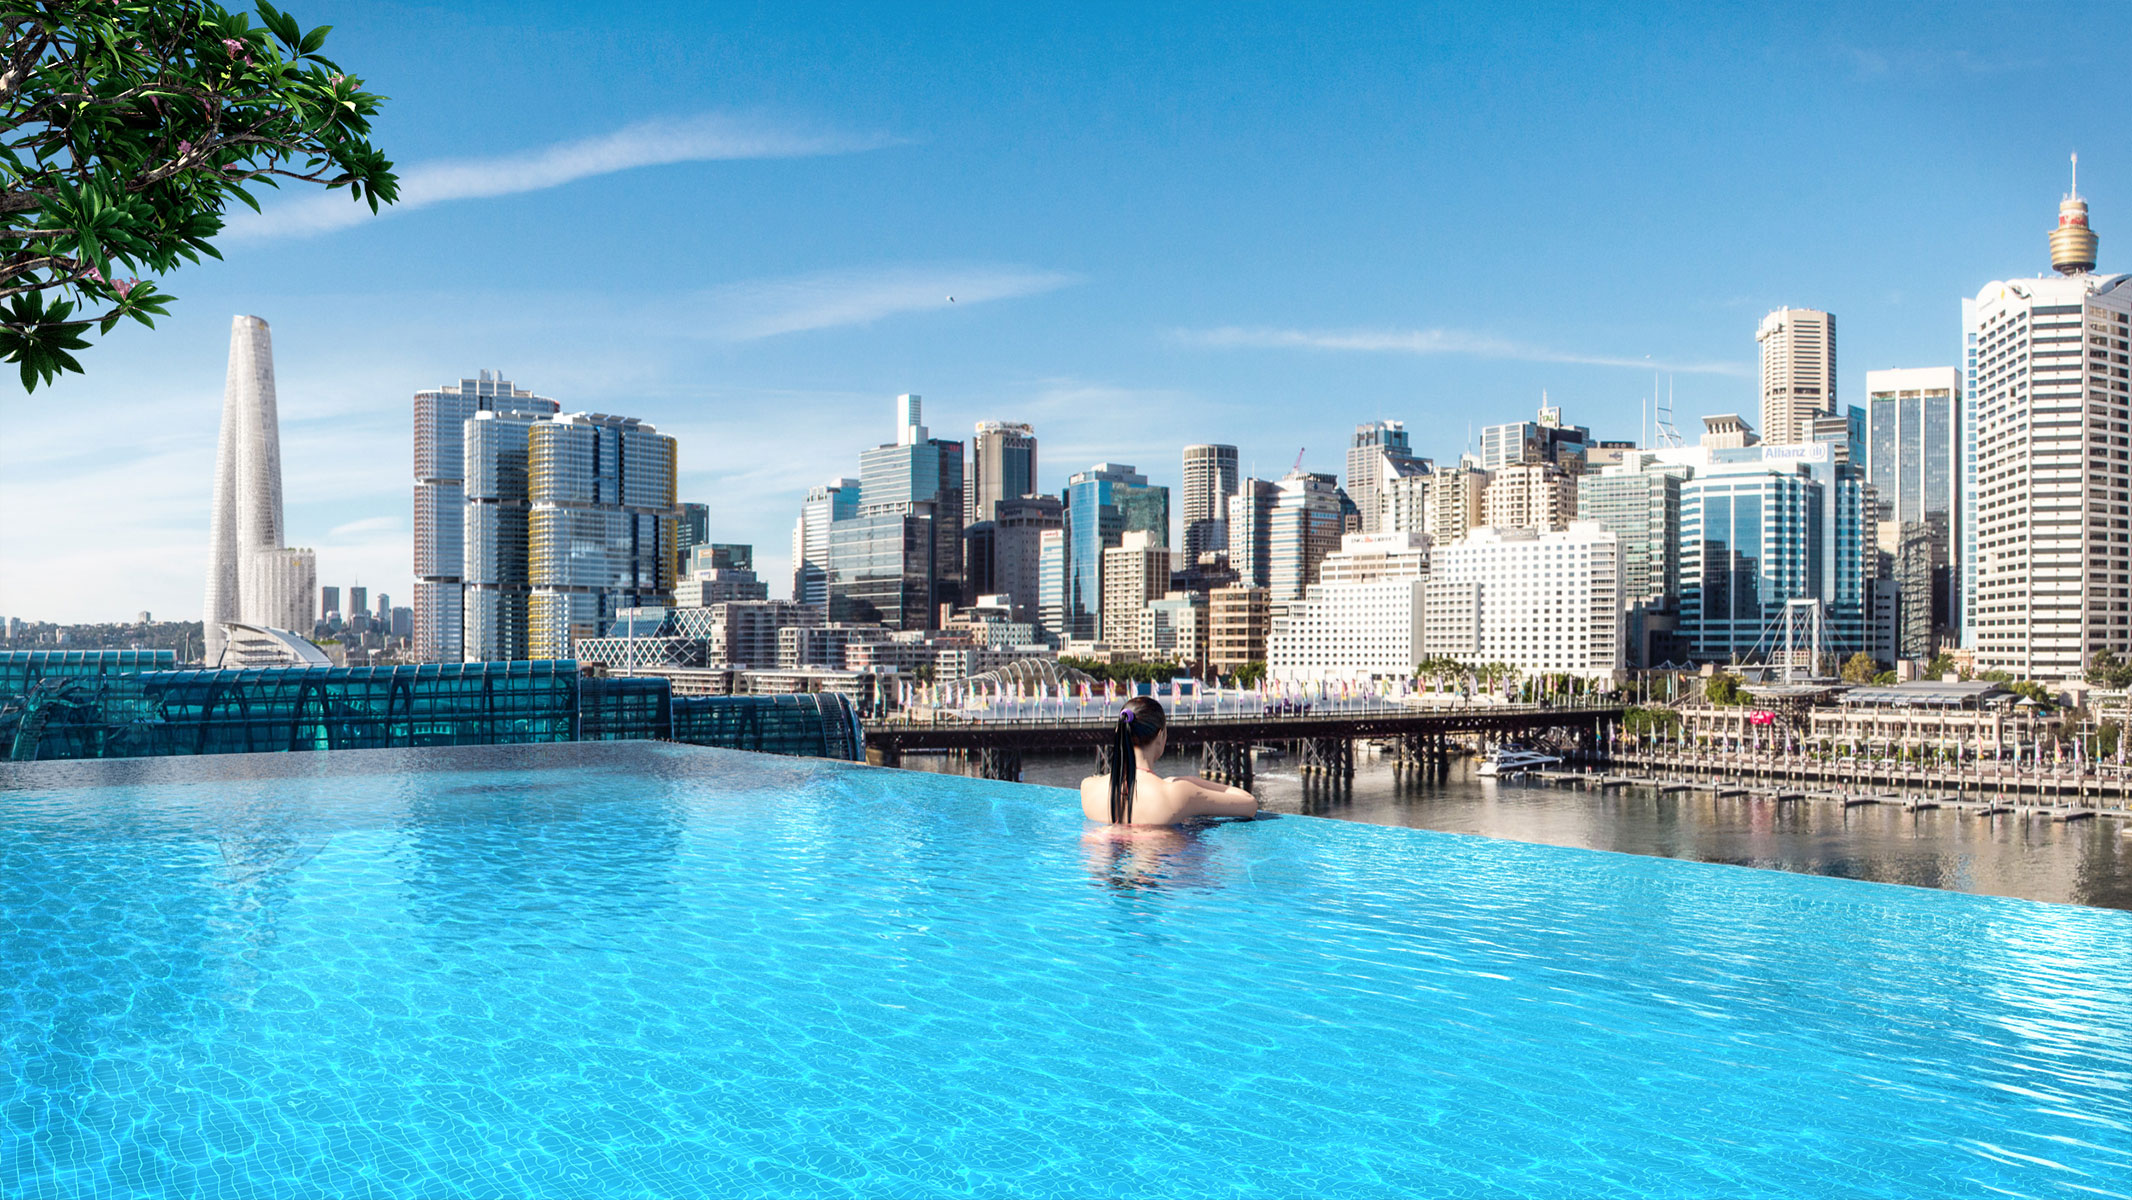 Sofitel Darling Harbour pool views